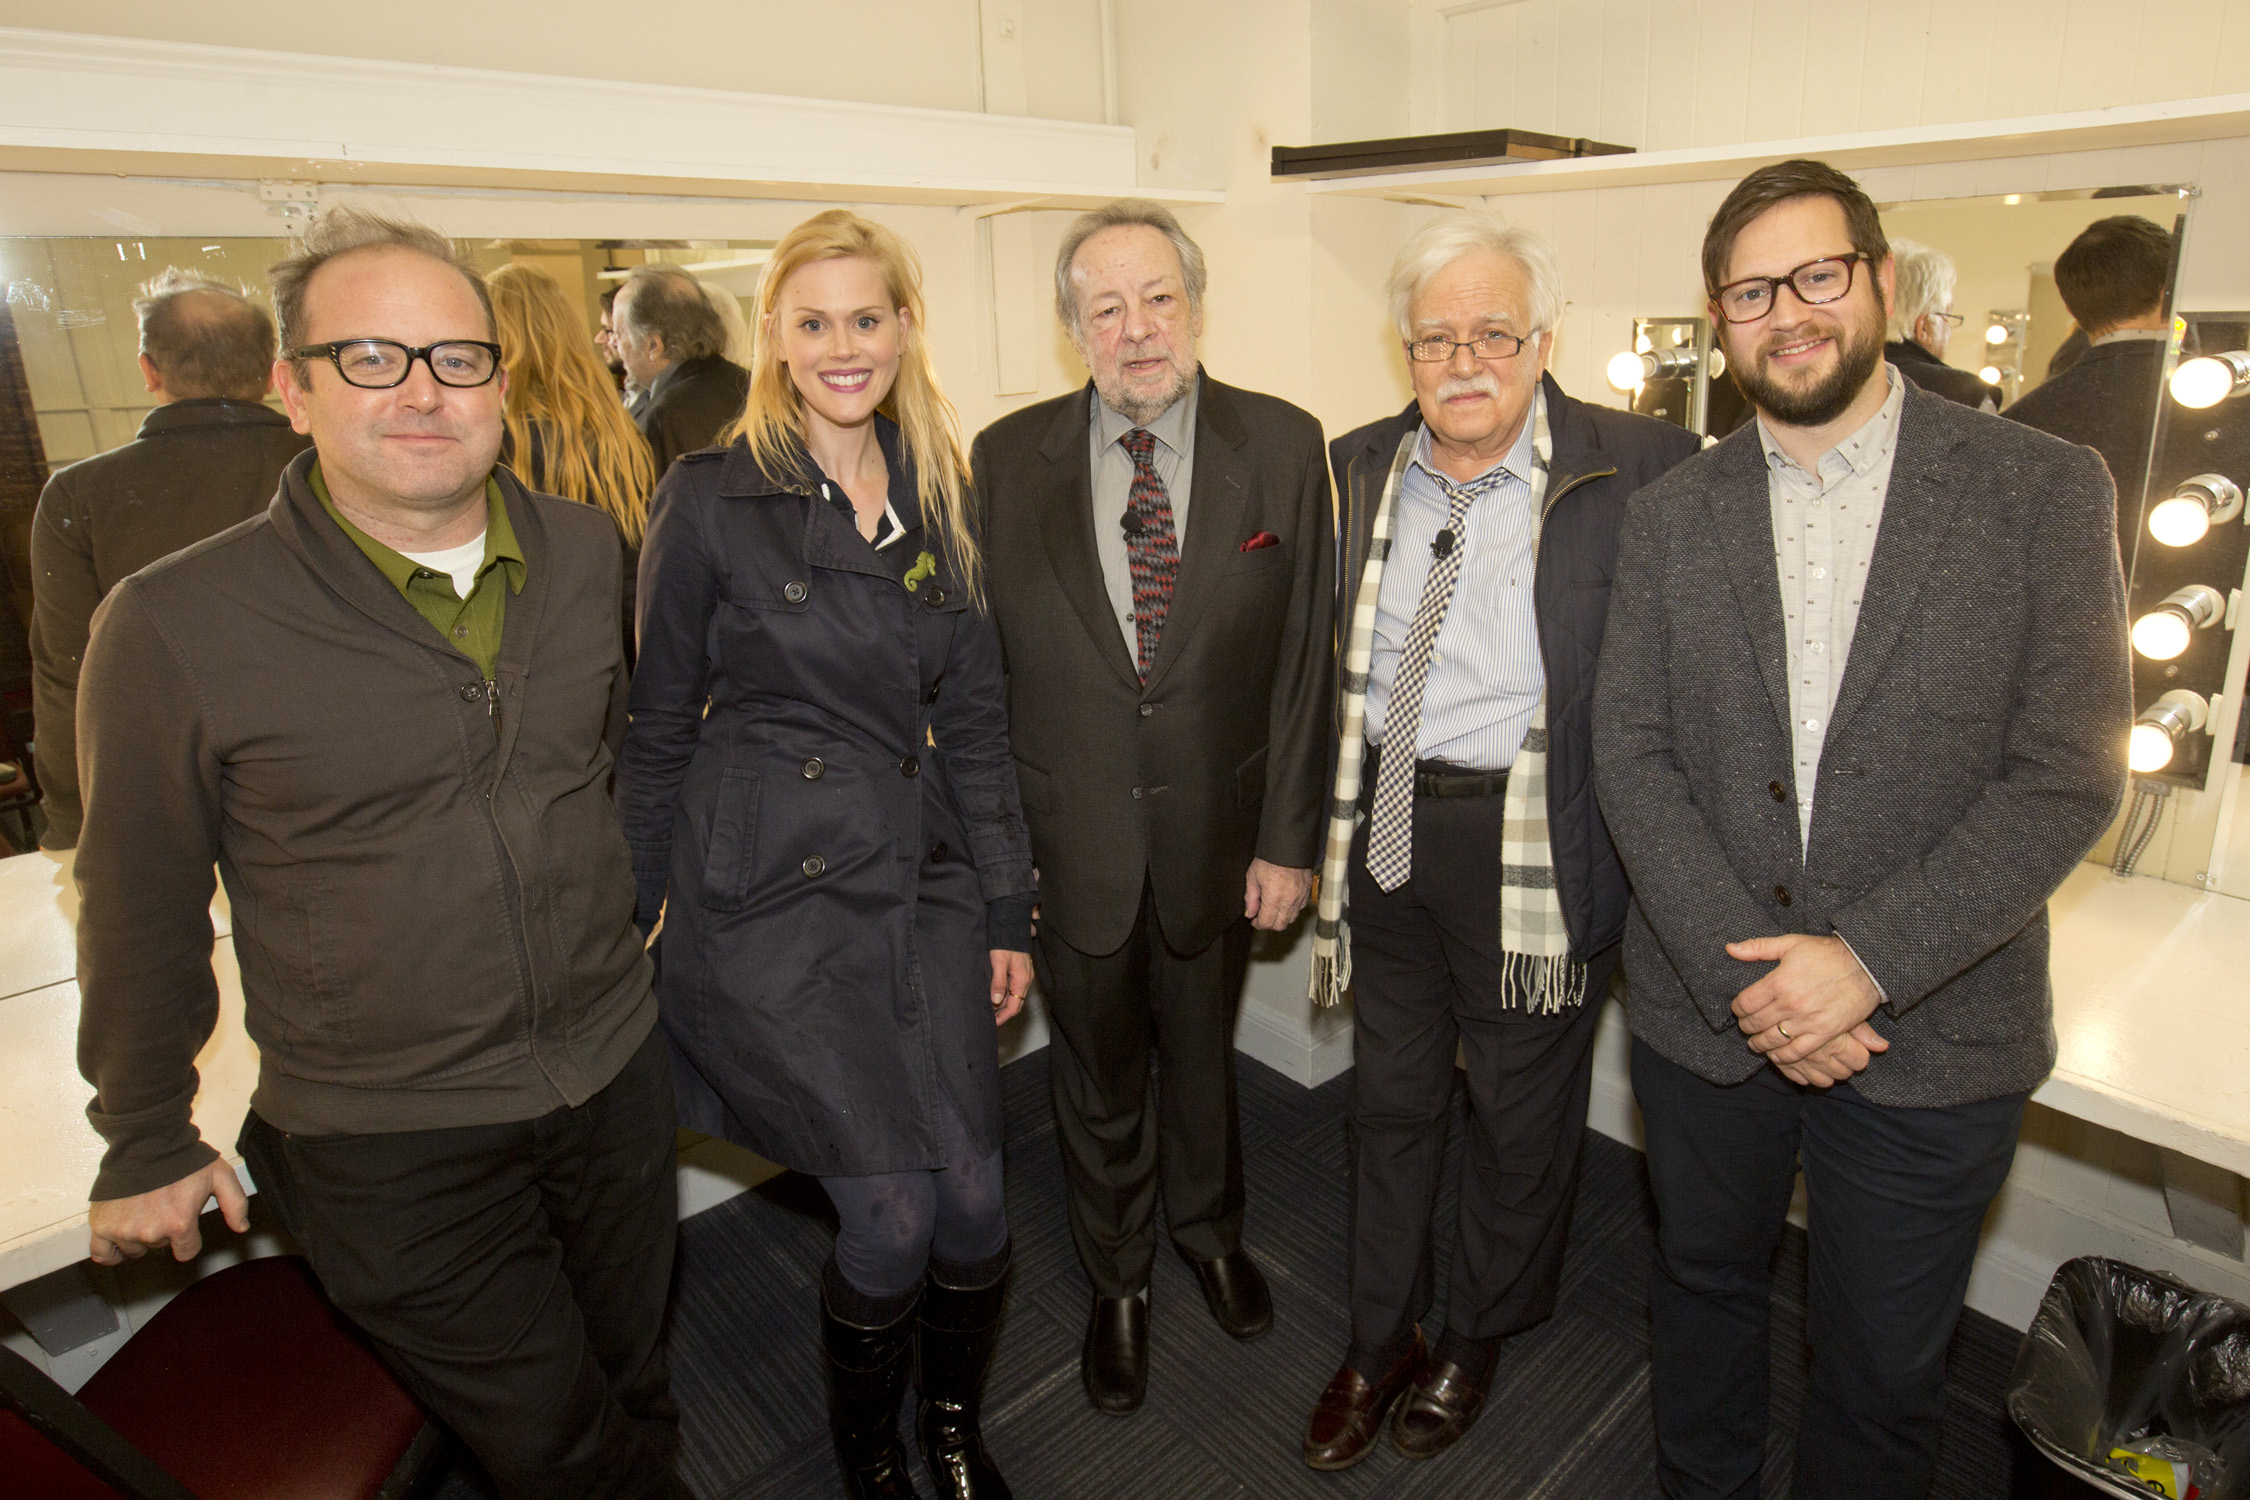 David Owen, Janet Varney, Ricky Jay and Van Dyke Parks. Photo by Jakub Mosur.